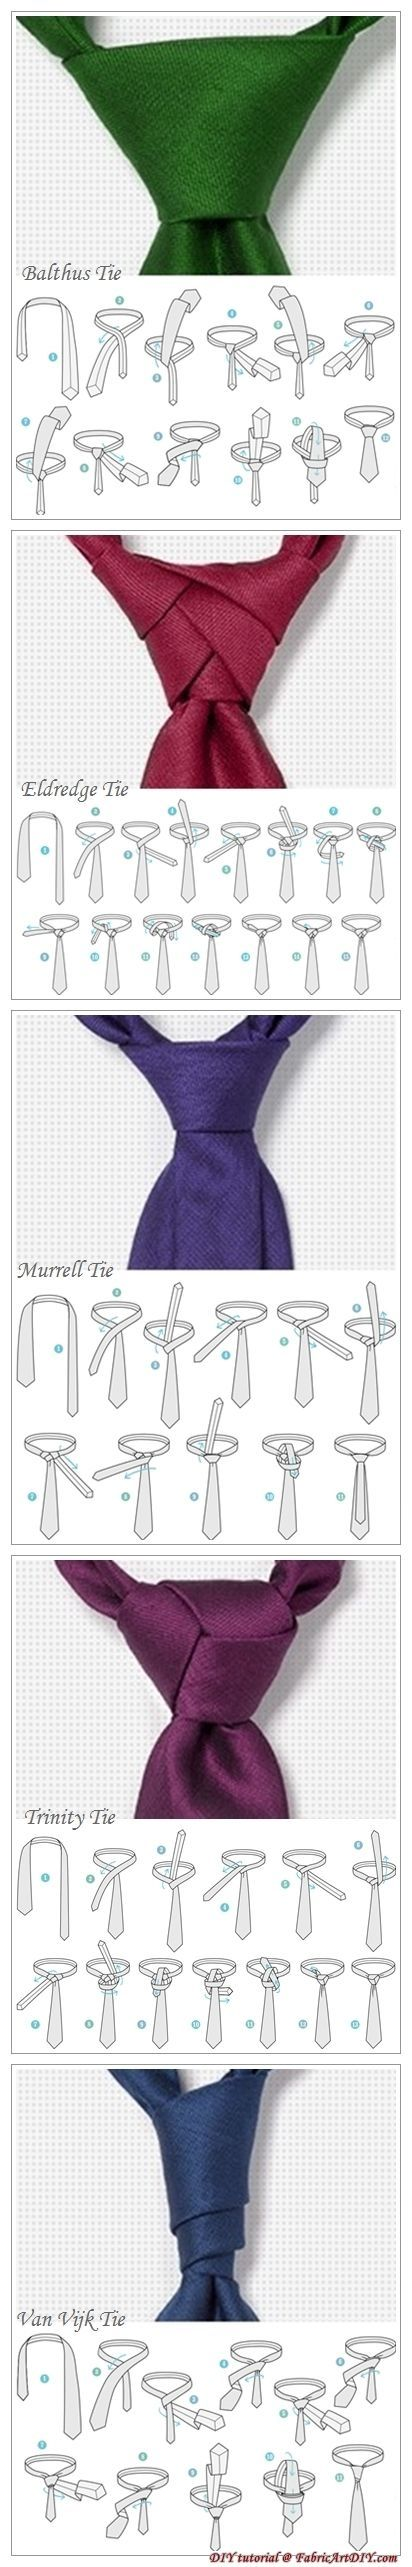 Adventurous Tie Knot Instruction By Noreen Shoes Pinterest Windsor A And Ties On